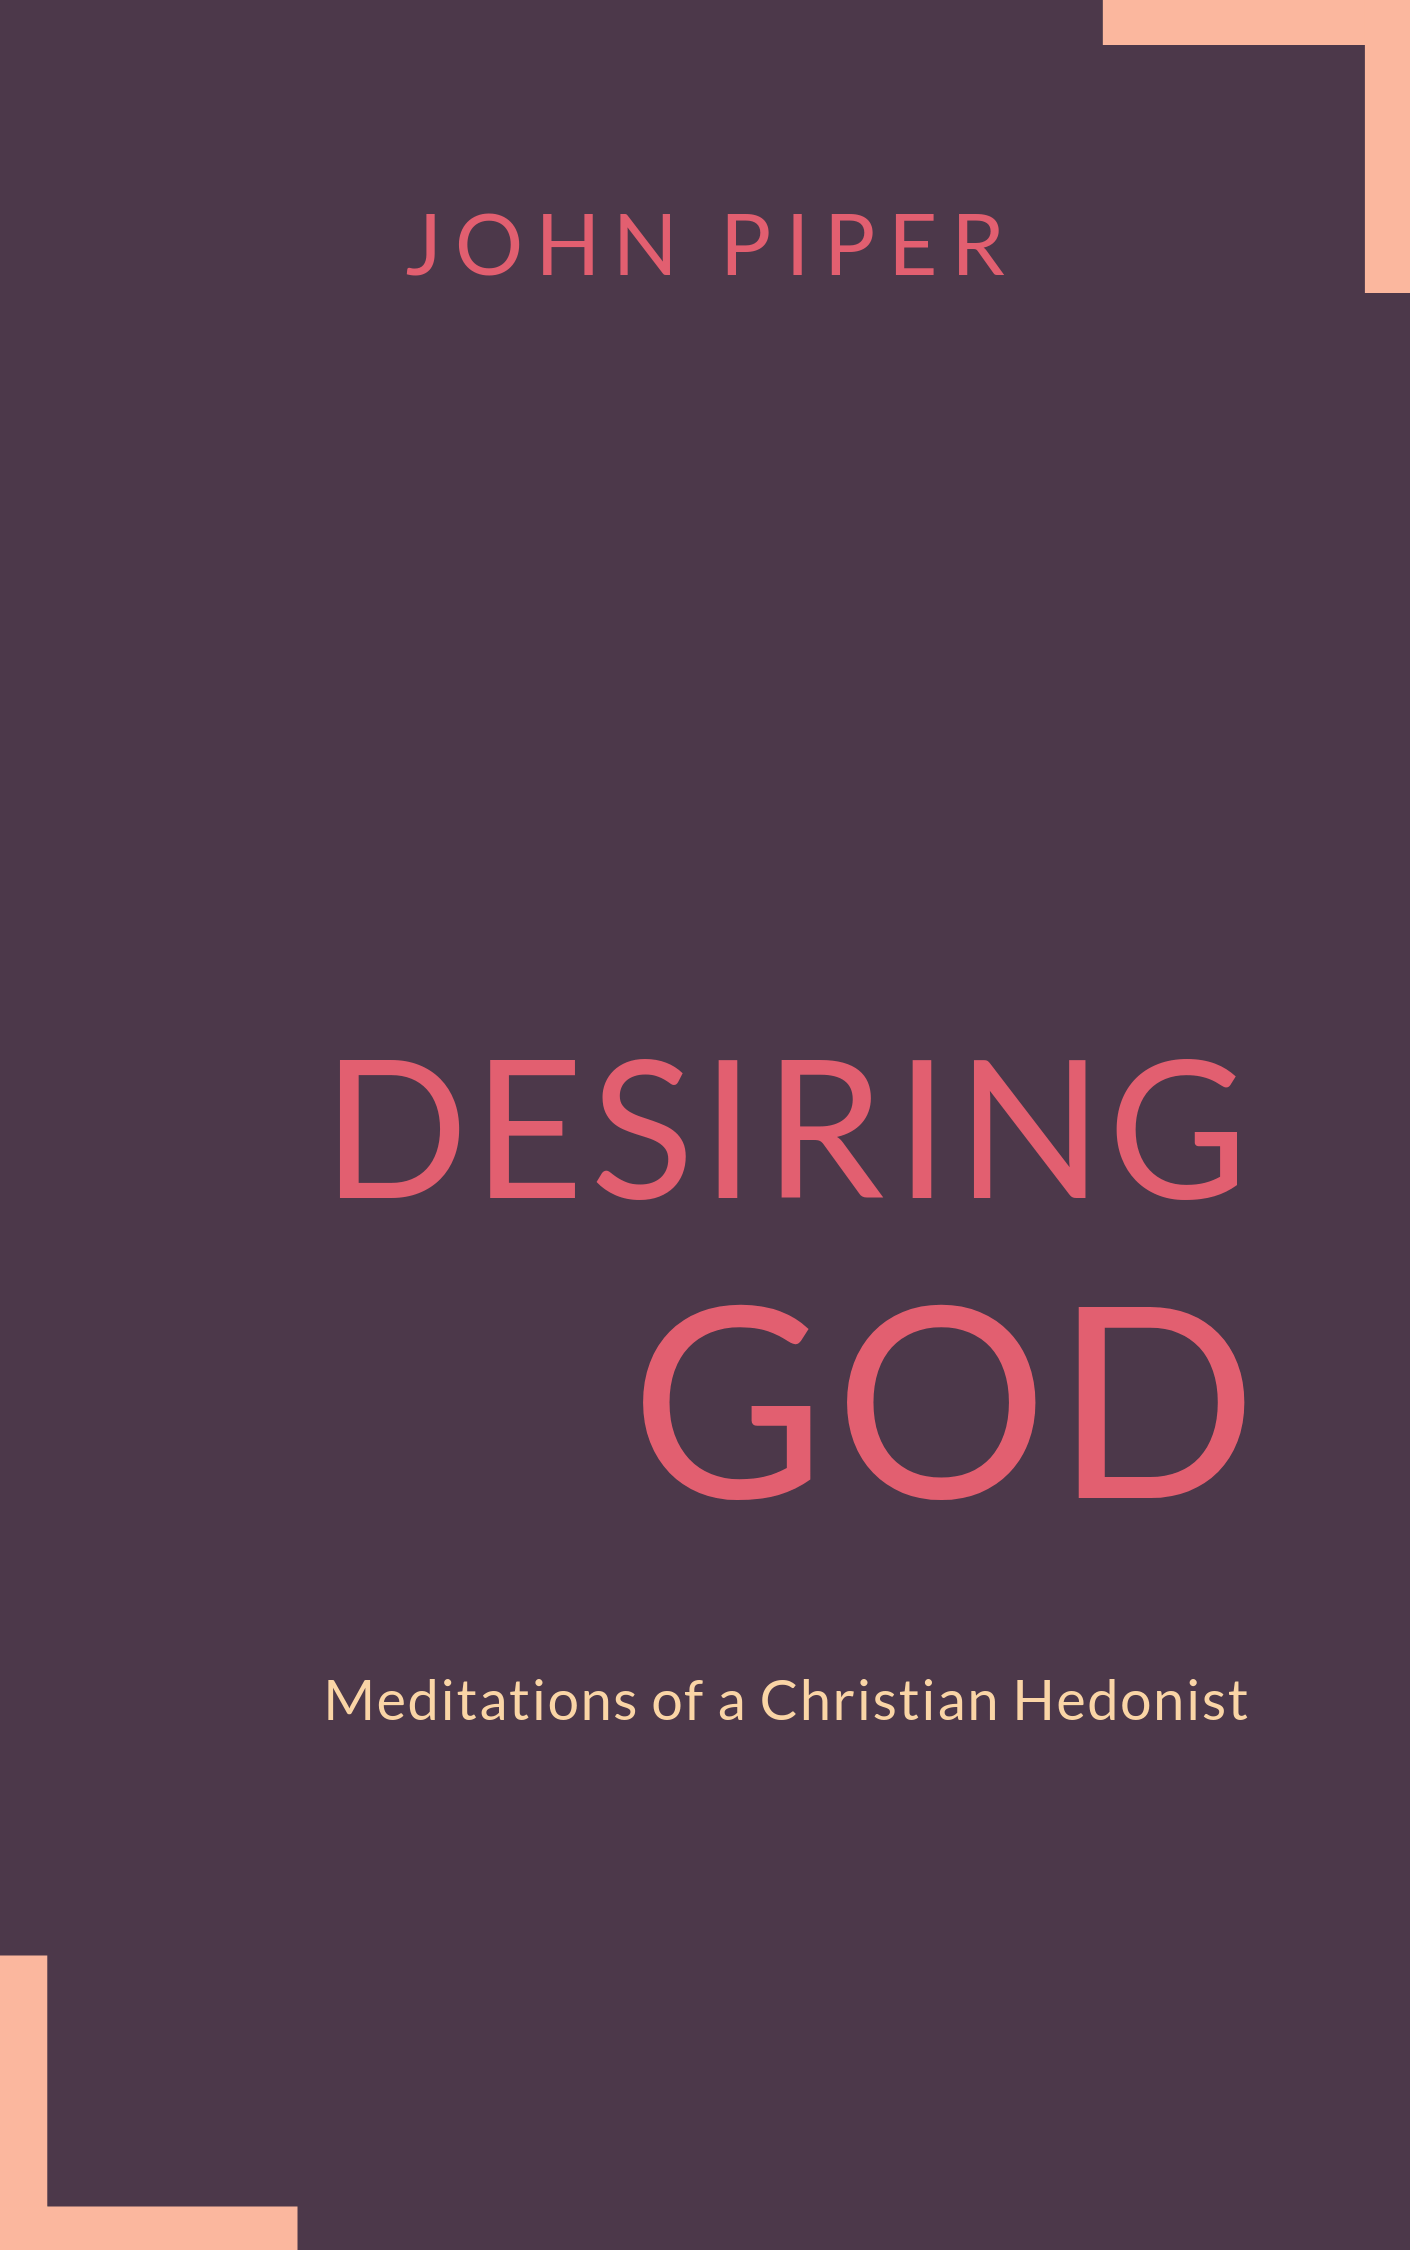 desiring god john piper book pdf